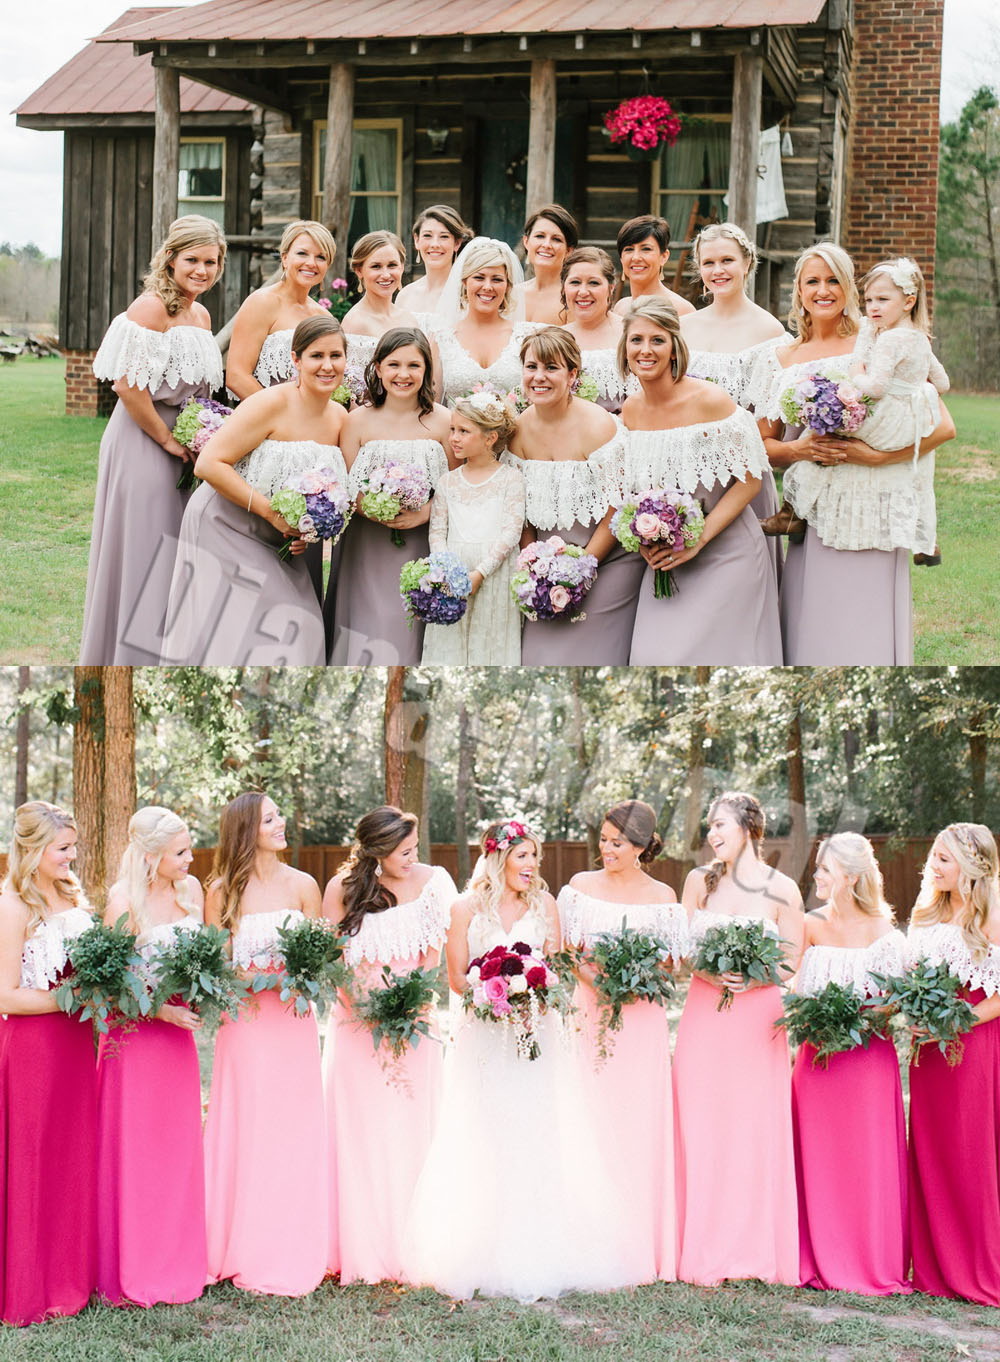 Elegant bohemian strapless lace covered backless bridesmaid dress elegant bohemian strapless lace covered backless bridesmaid dress bridal shower wedding party dresses garden wedding plus size in bridesmaid dresses from ombrellifo Image collections